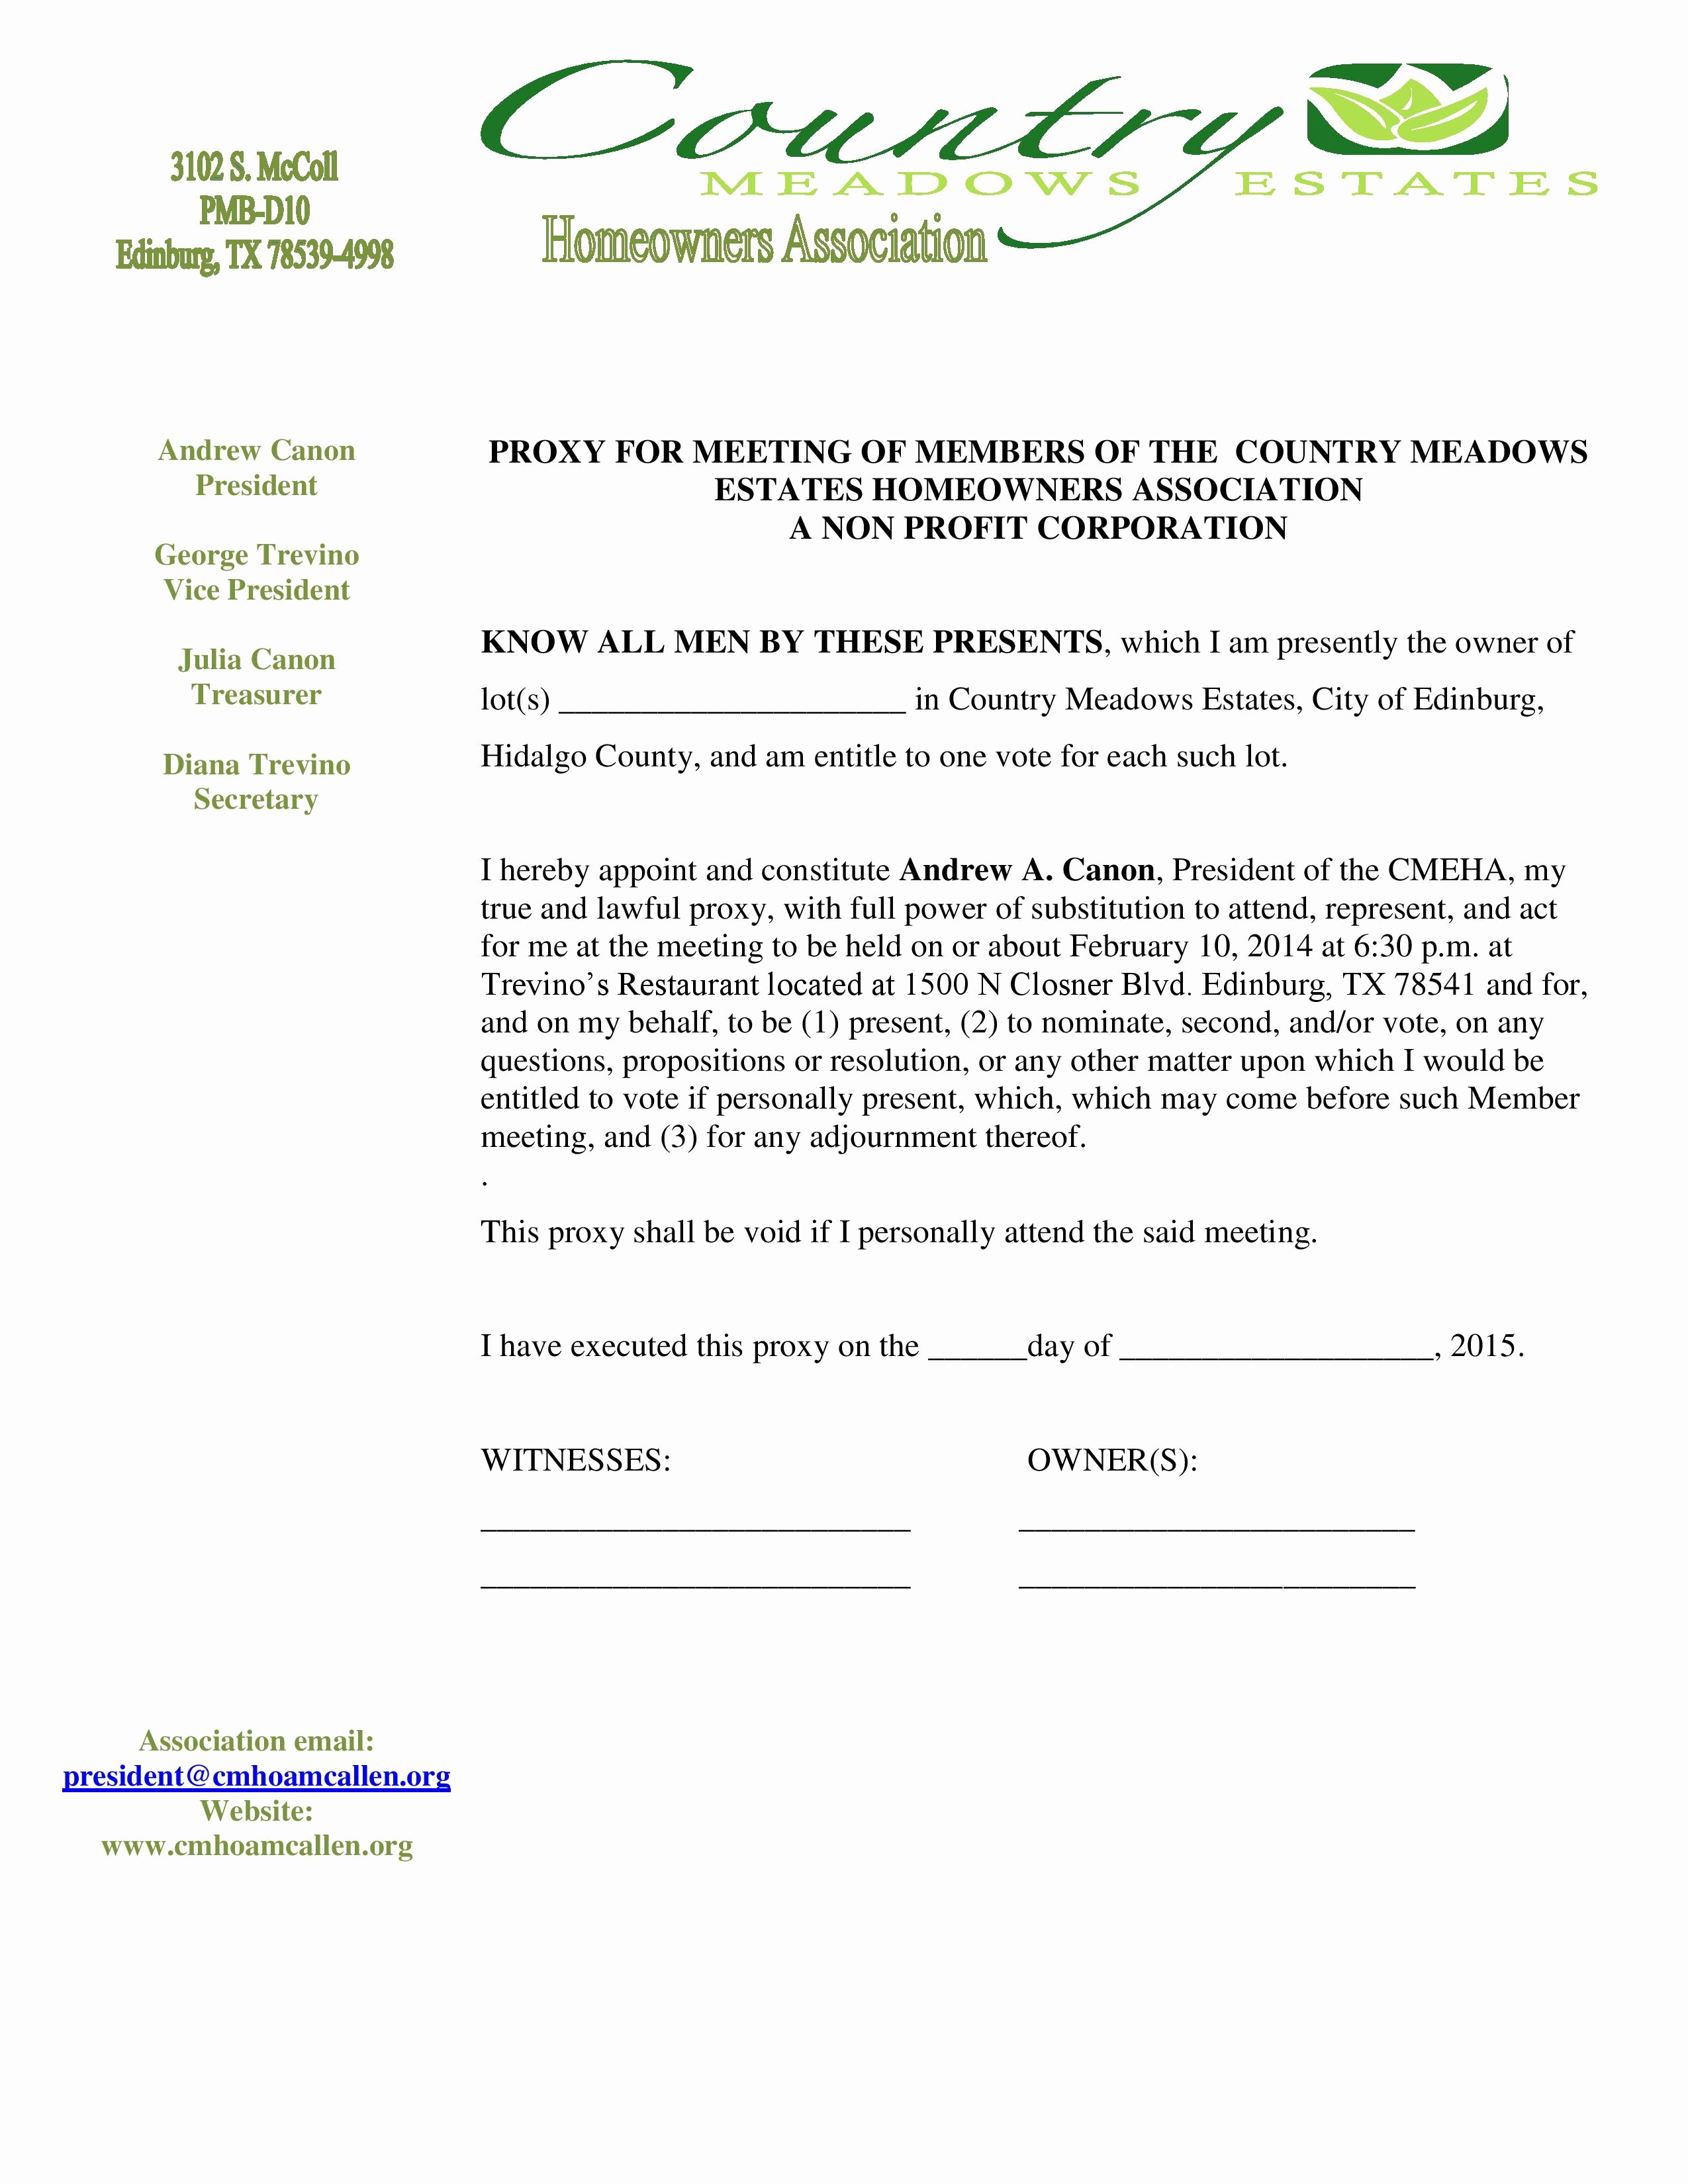 Hoa Proxy Vote form Template Awesome Hoa Meeting Proxy Letter